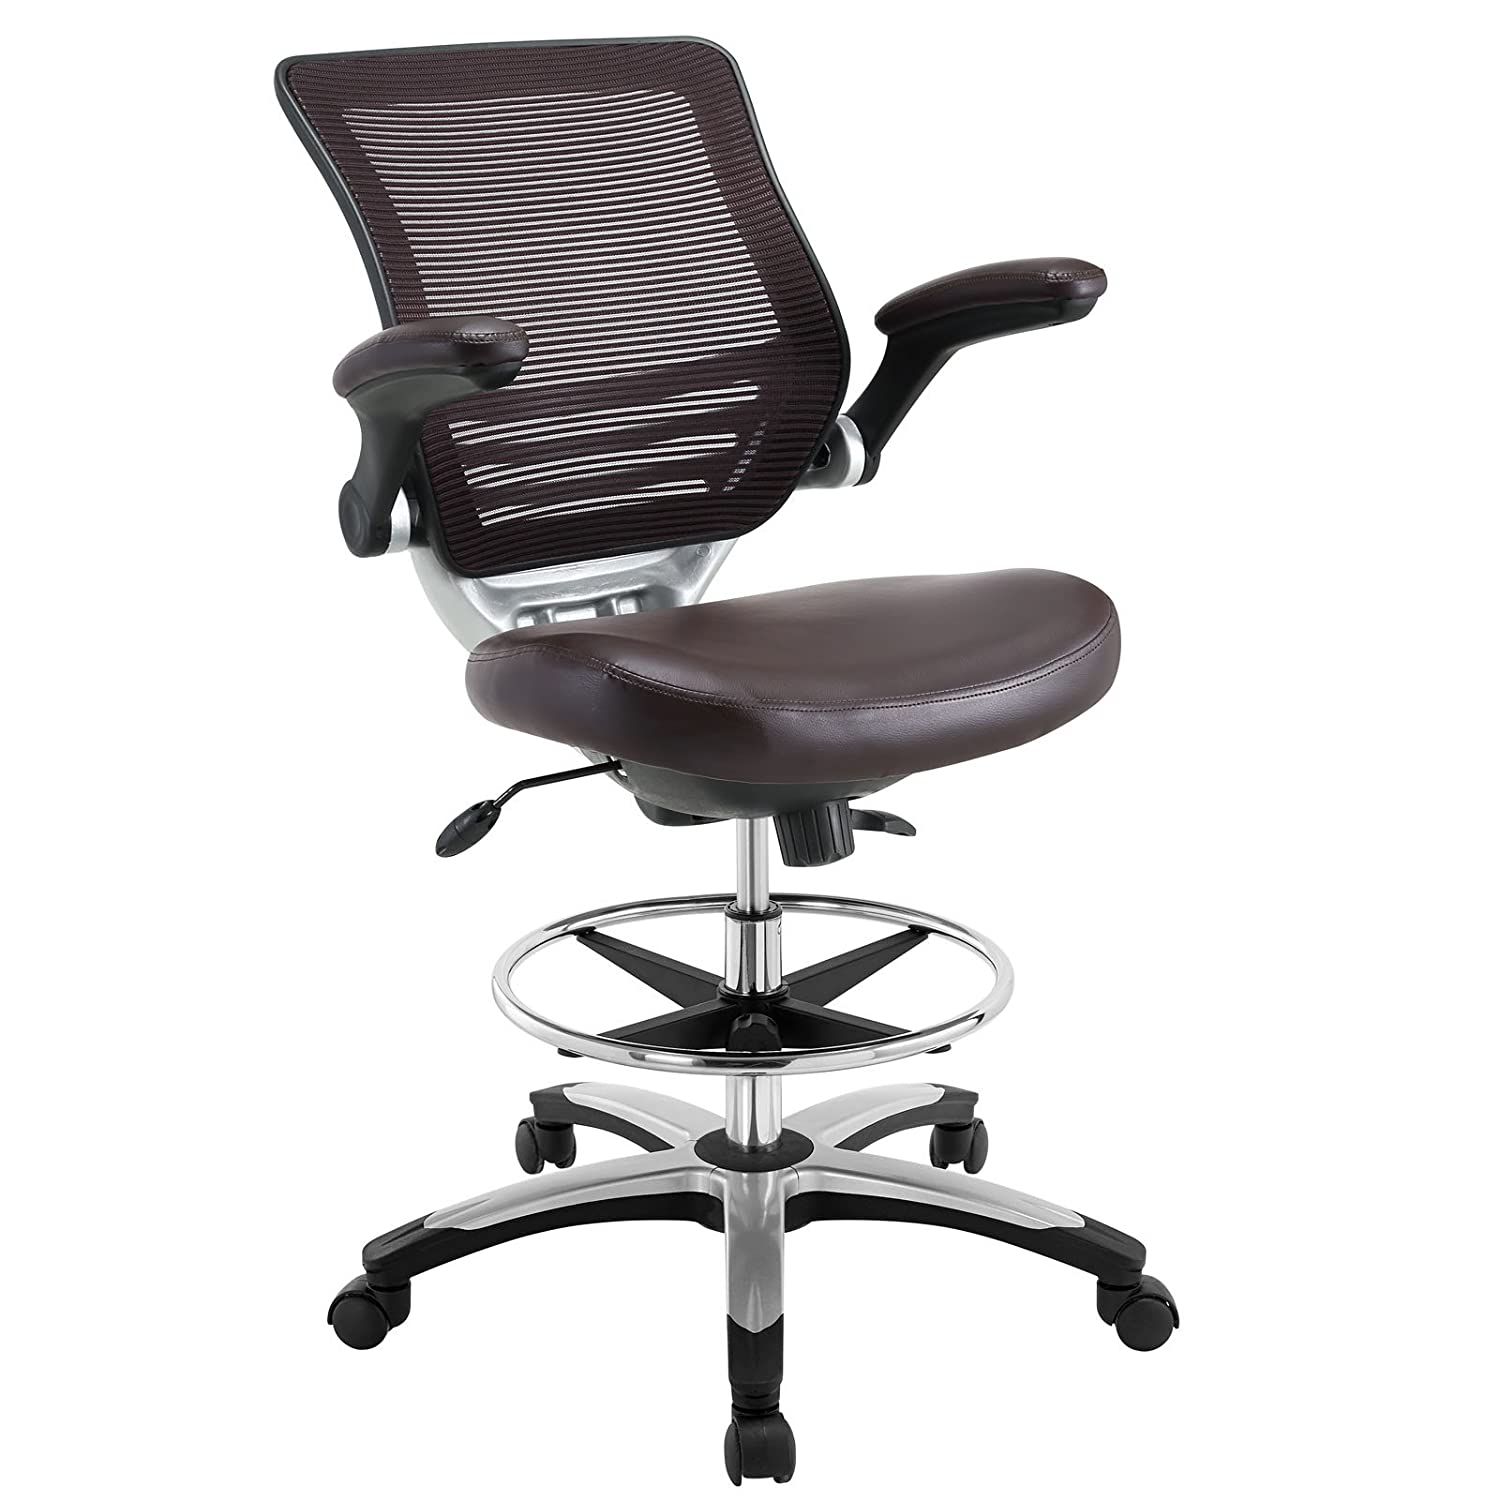 Office chair for drafting table - Modway Edge Drafting Chair In Brown Vinyl Reception Desk Chair Tall Office Chair For